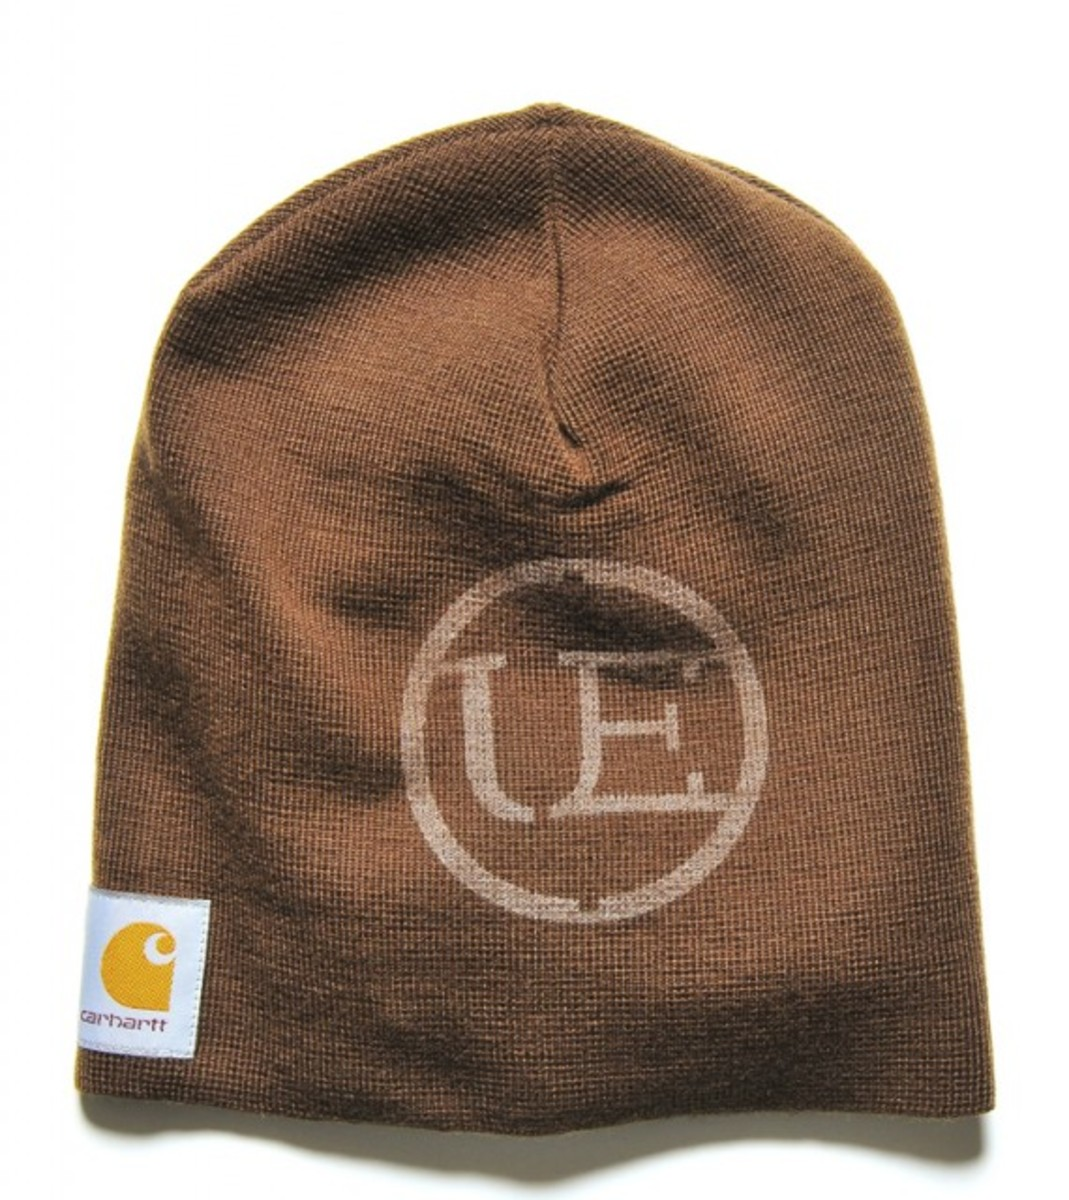 uniform-experiment-carhartt-knit-cap-08